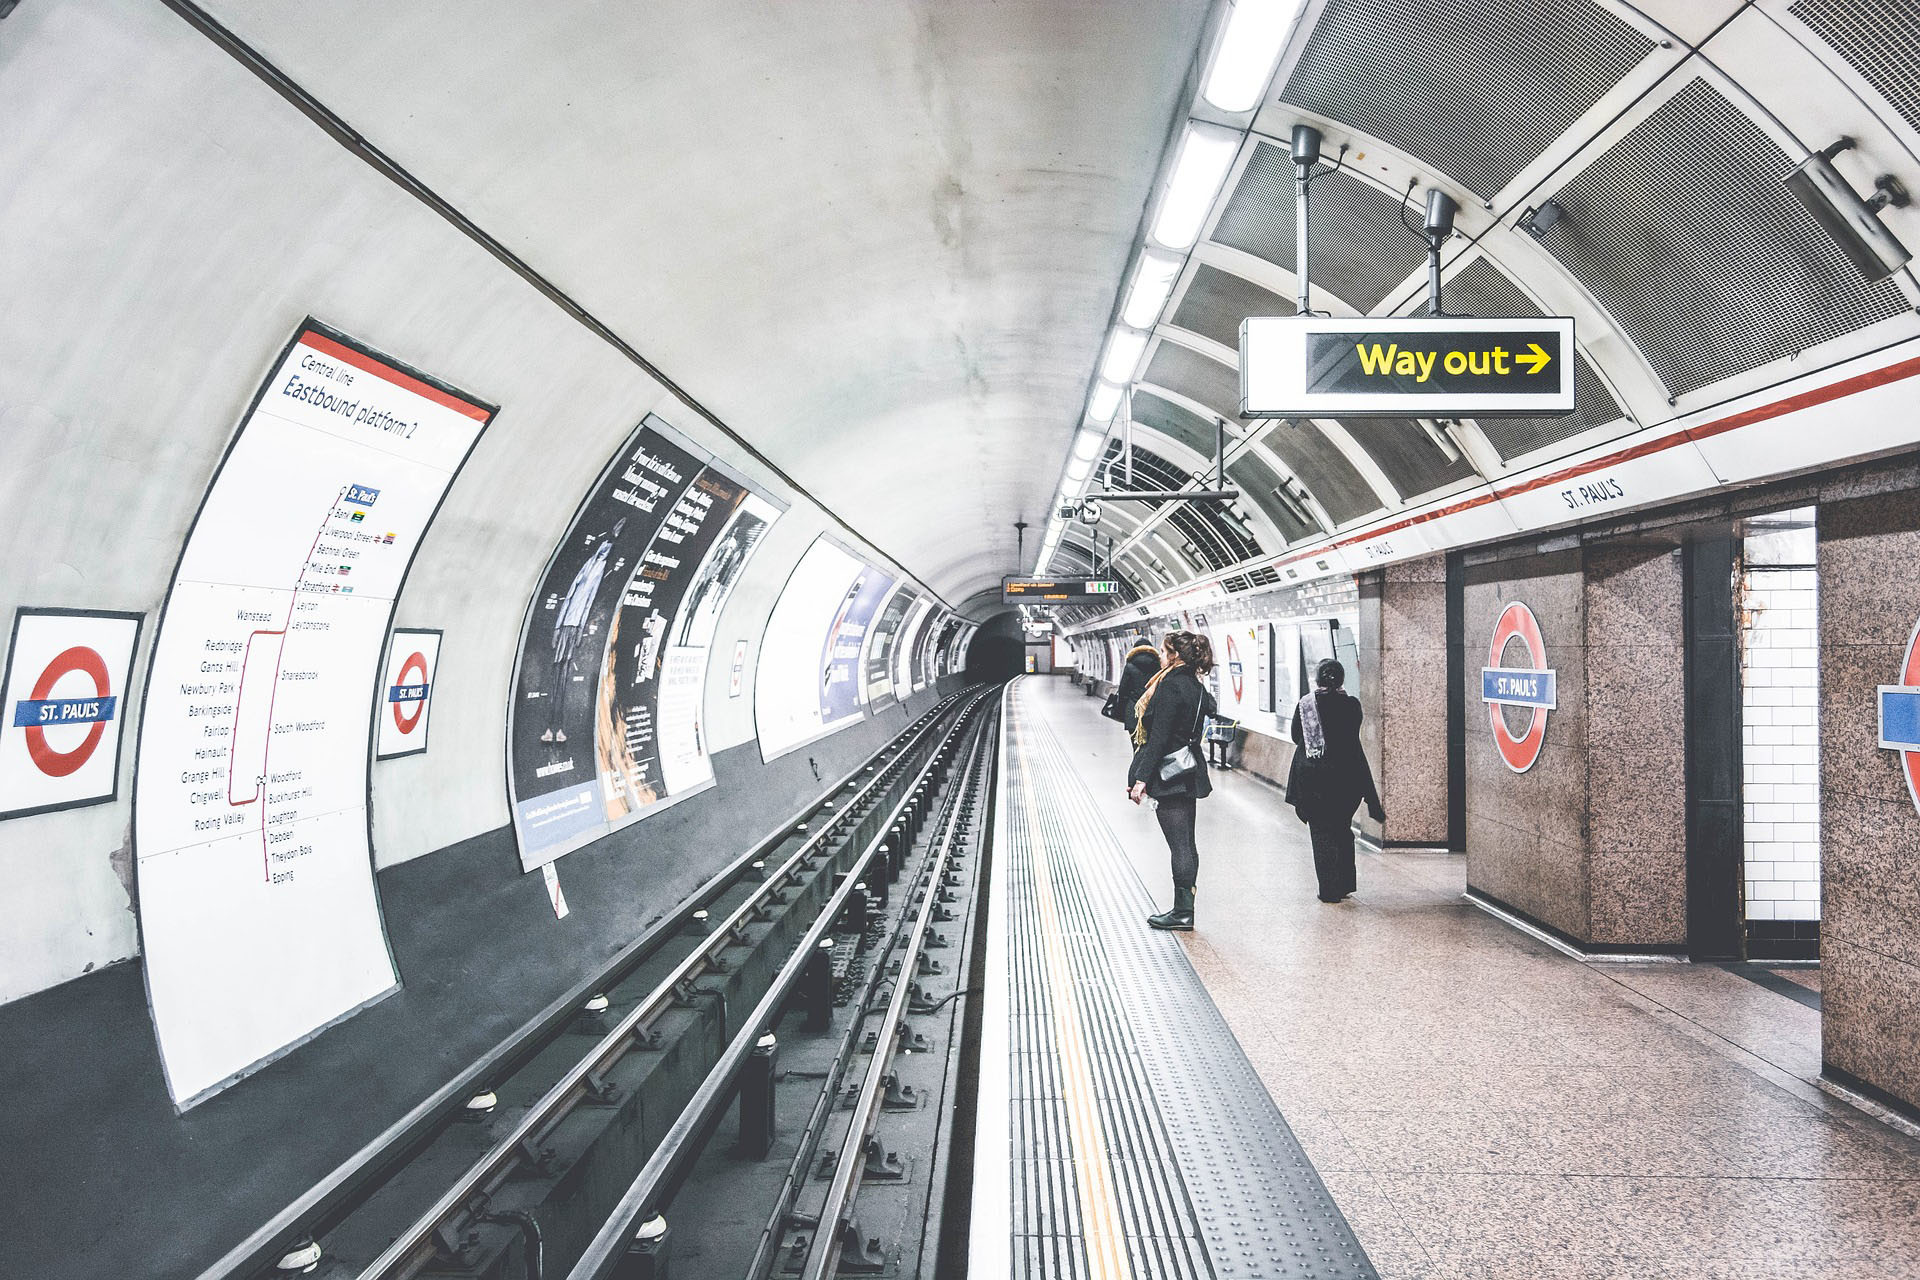 A photo of a London Underground platform taken at the edge looking down the tracks